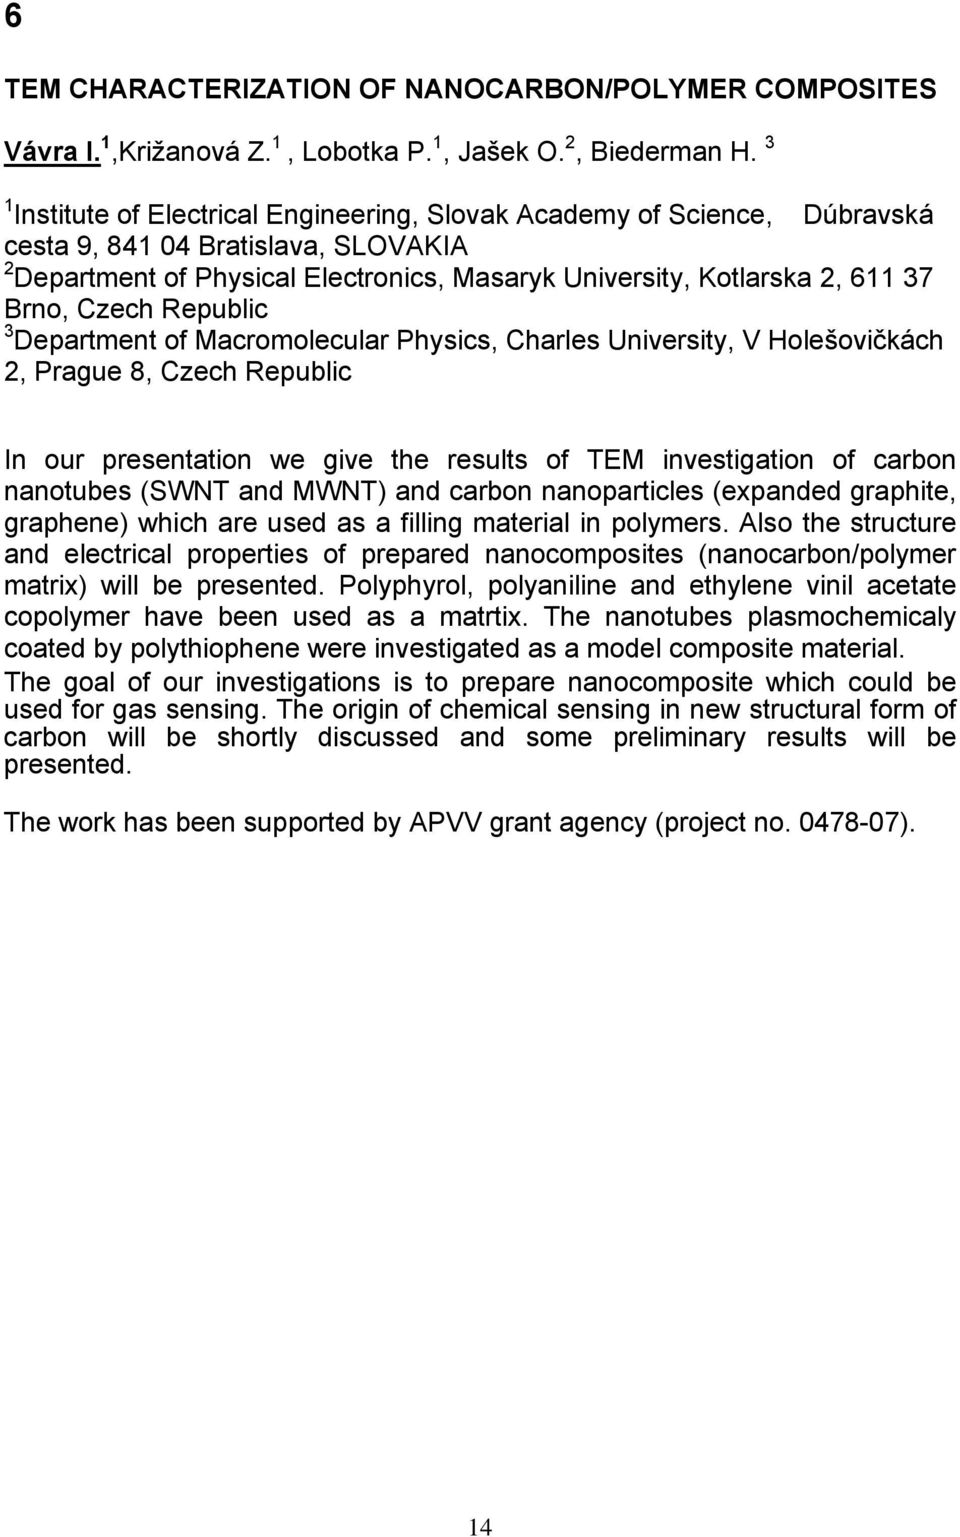 Czech Republic 3 Department of Macromolecular Physics, Charles University, V Holešovičkách 2, Prague 8, Czech Republic In our presentation we give the results of TEM investigation of carbon nanotubes